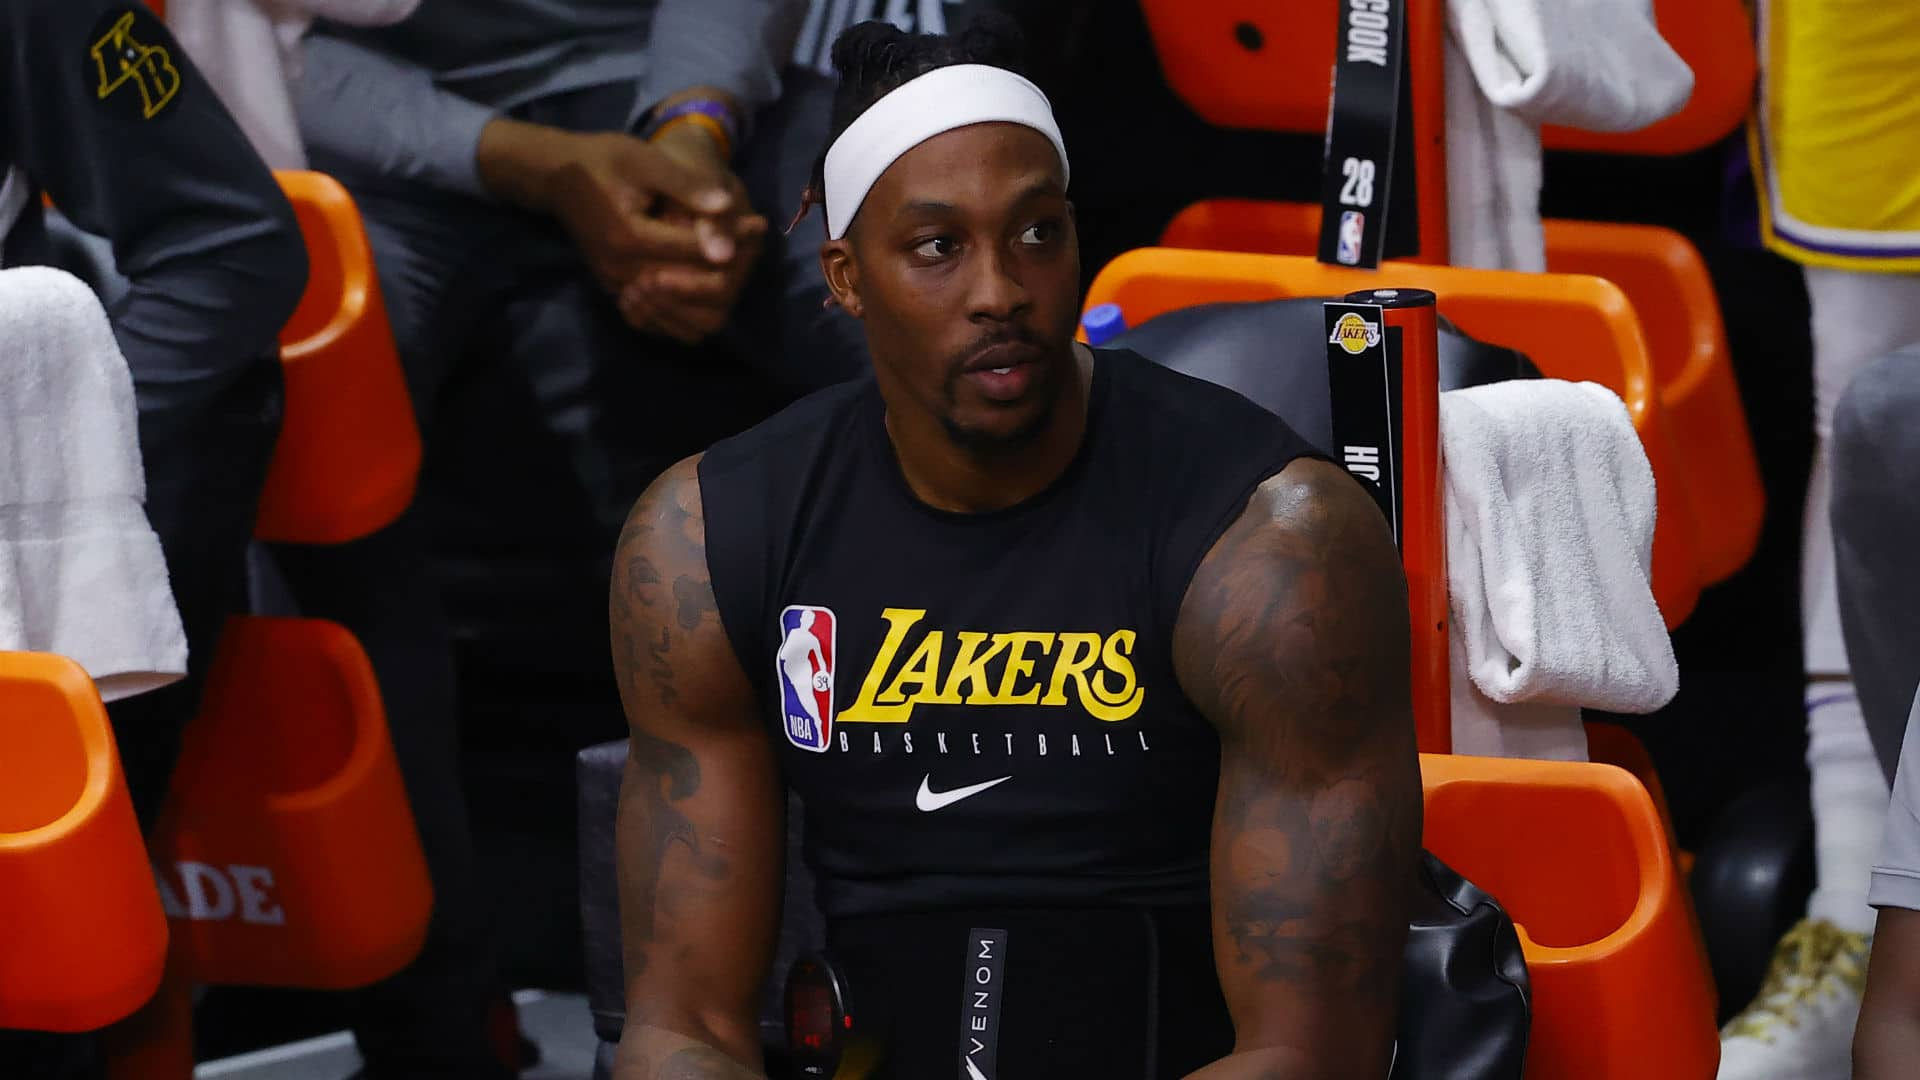 dwight-howard-deletes-tweet-asserting-hell-signal-with-lakers-free-agent-center-later-joins-76ers.jpg